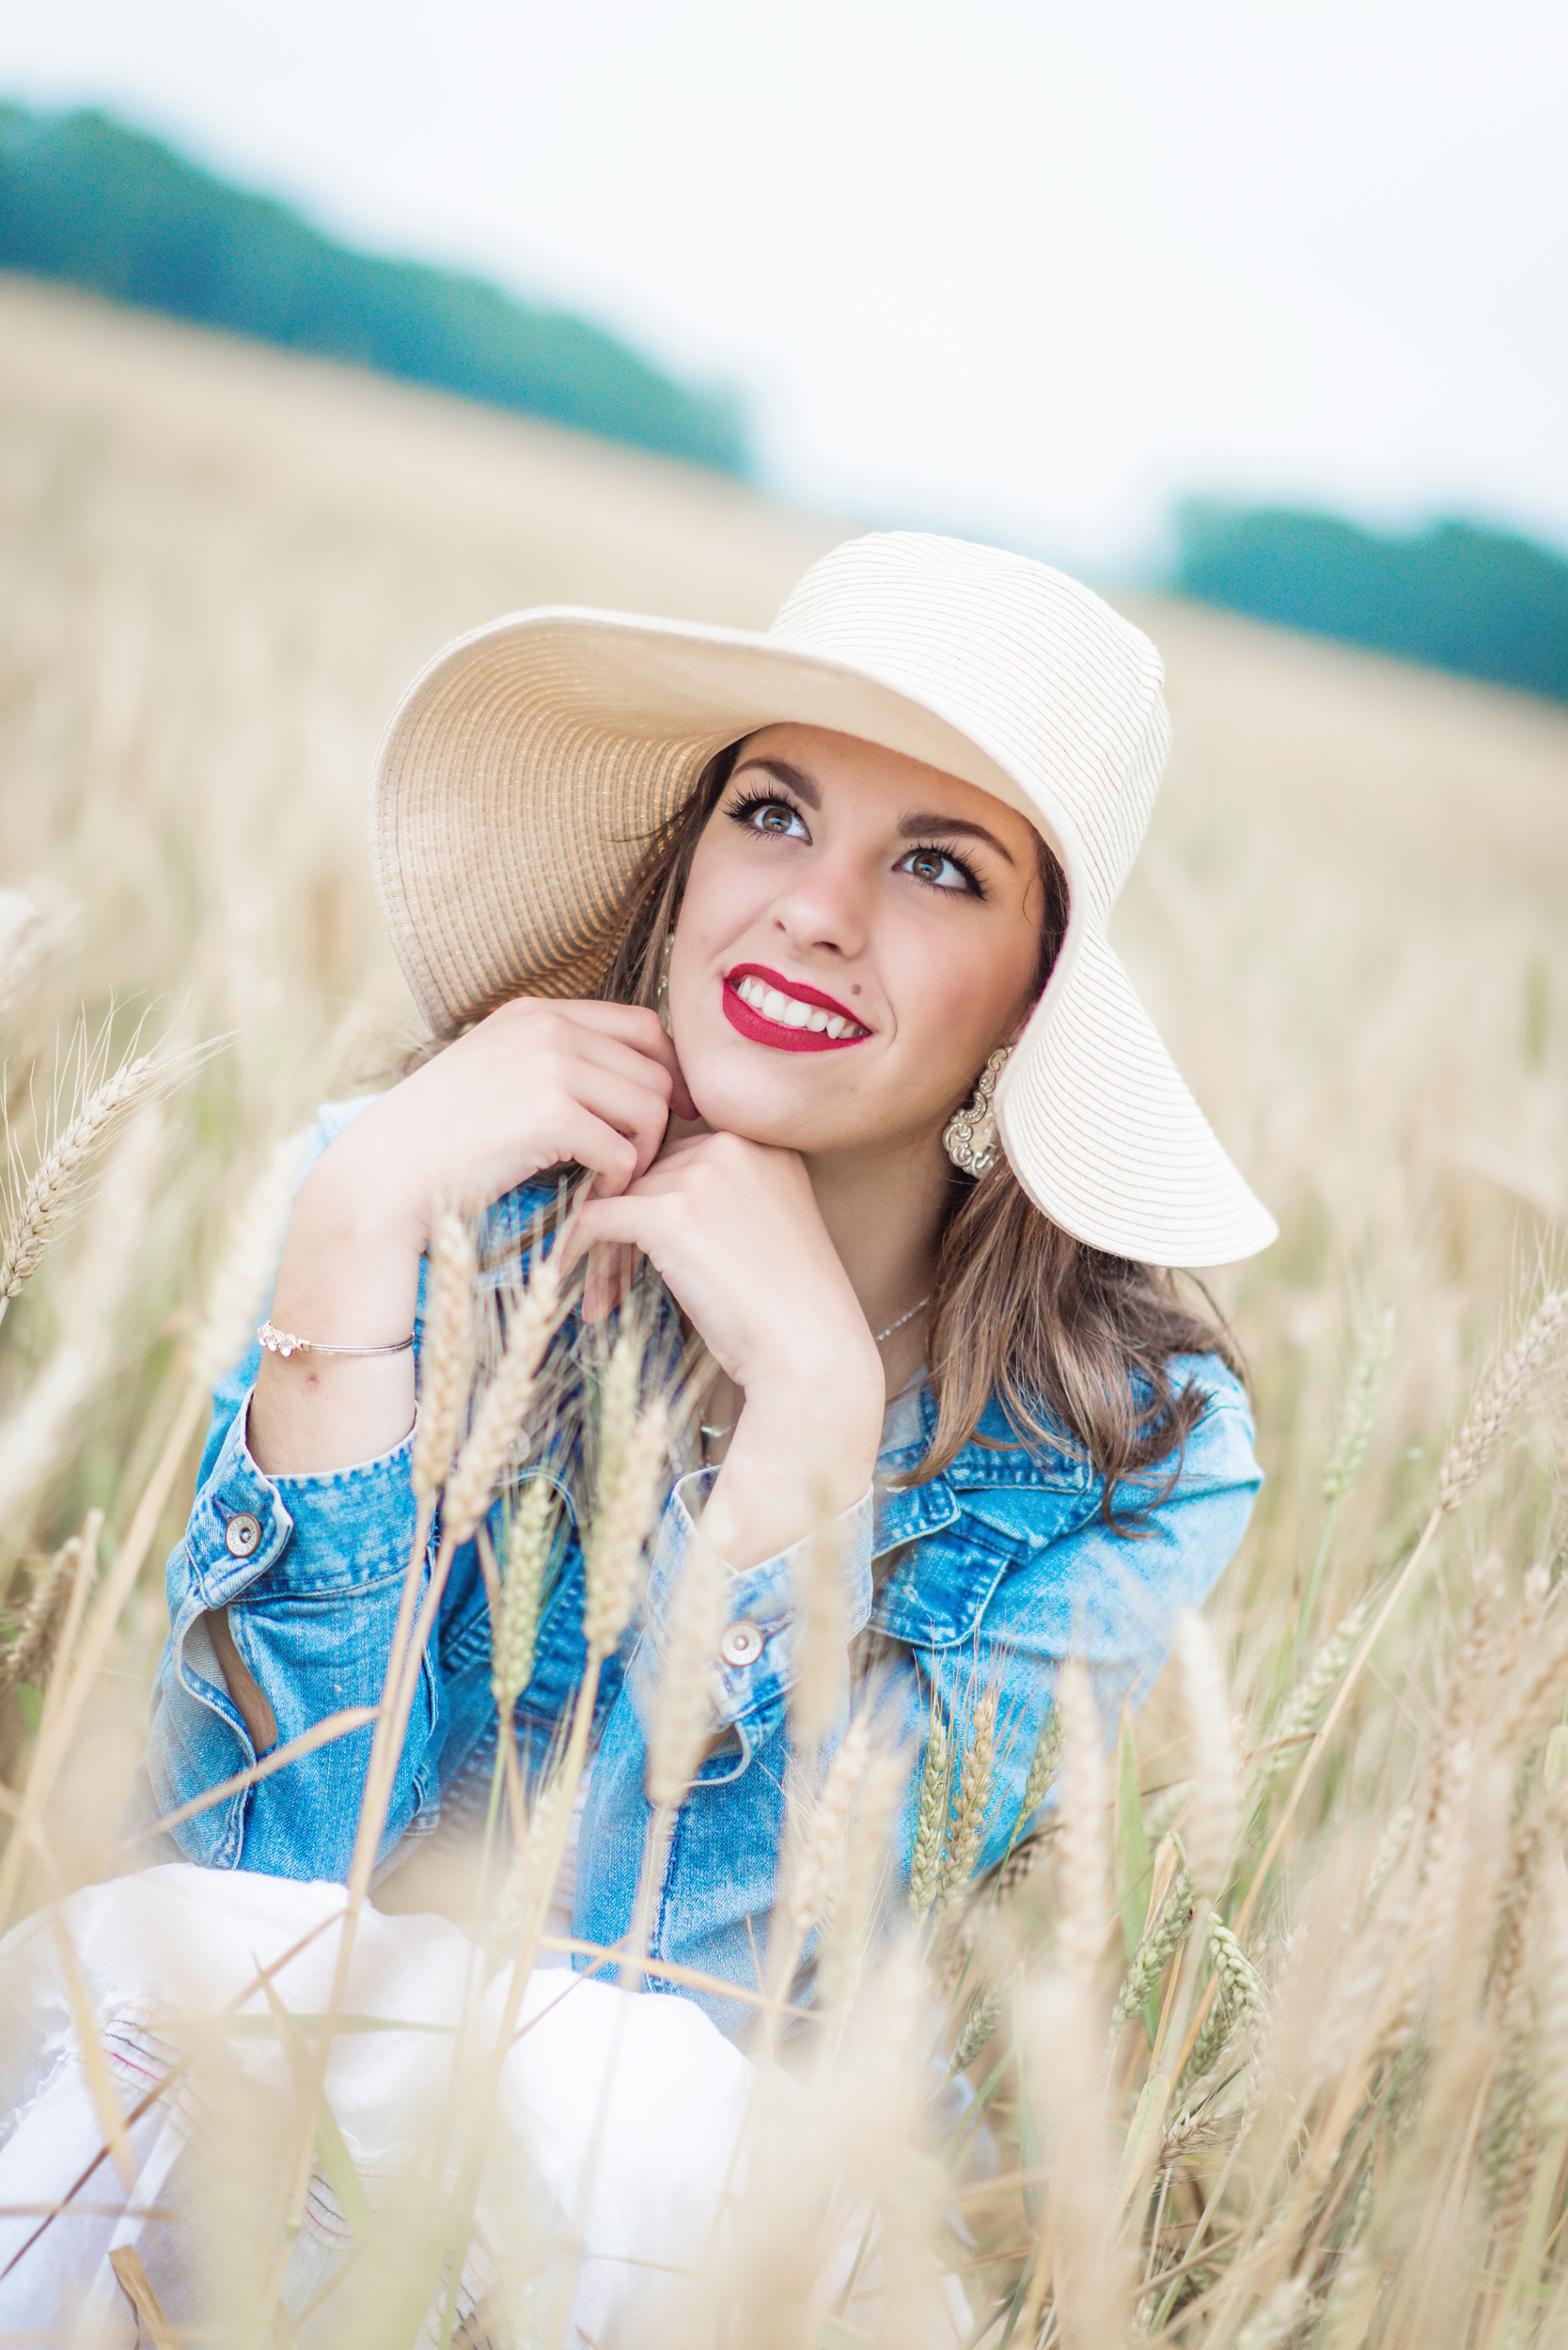 high school senior wheat field close up